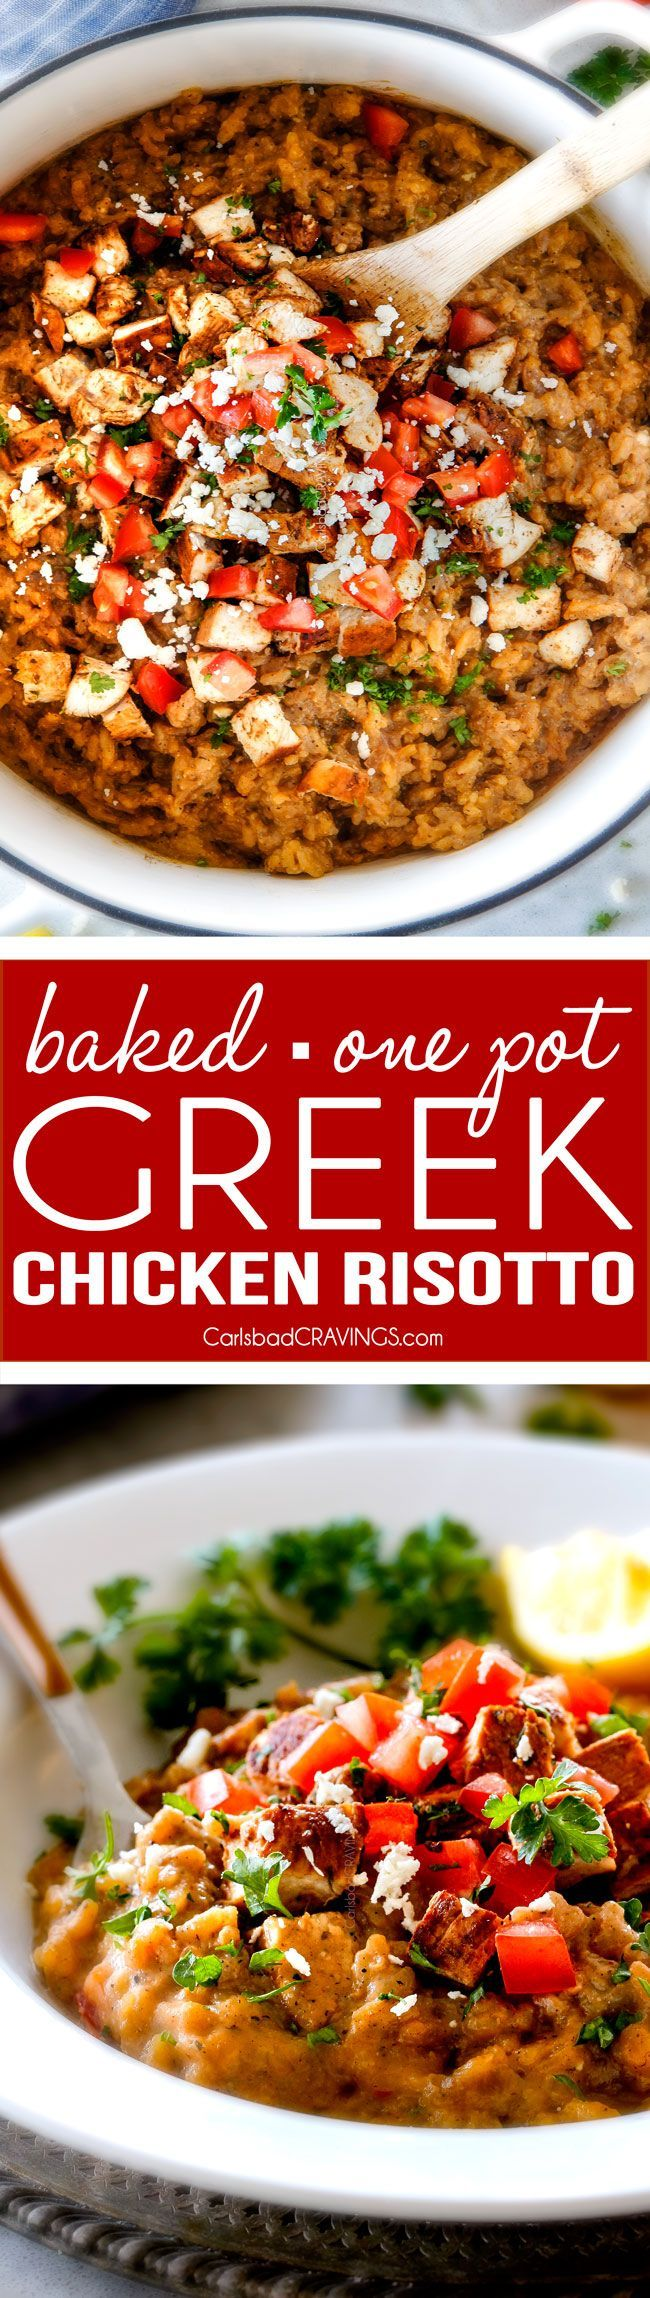 Easy, creamy BAKED Greek Chicken Risotto made in ONE POT! This has become a favorite dinner for my entire family and I love how easy it is! Its bursting with so much flavor and the chicken marinade is outstanding!